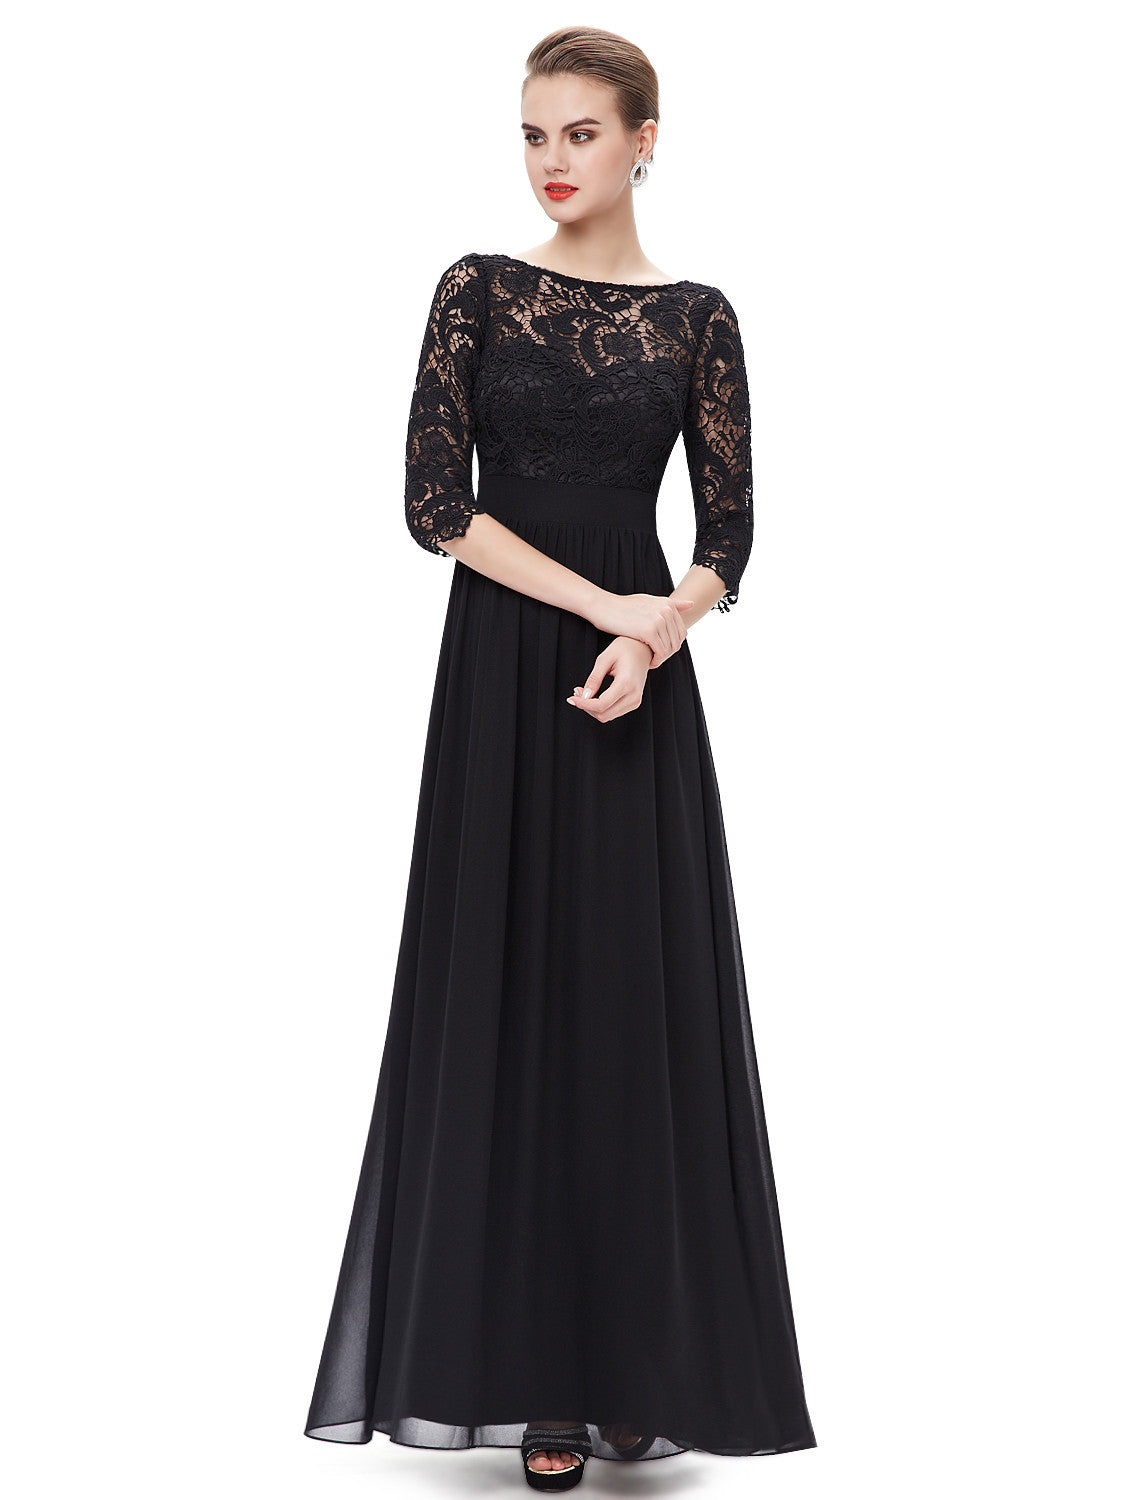 Elegant 3/4 Sleeve Lace Black Dress - O'beige